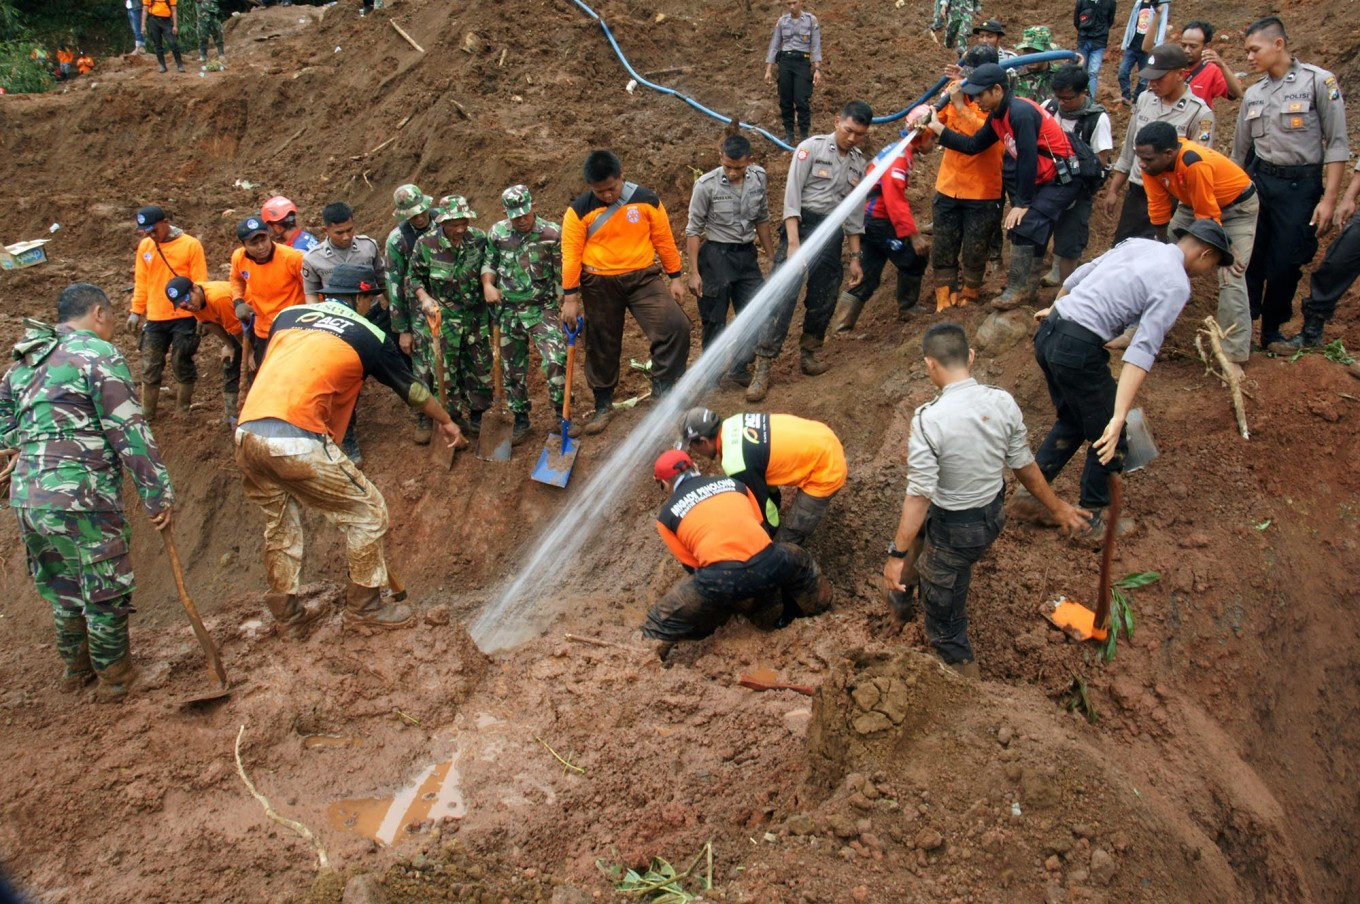 Social Affairs Ministry gives Rp 150b in aid to Ponorogo landslide victims